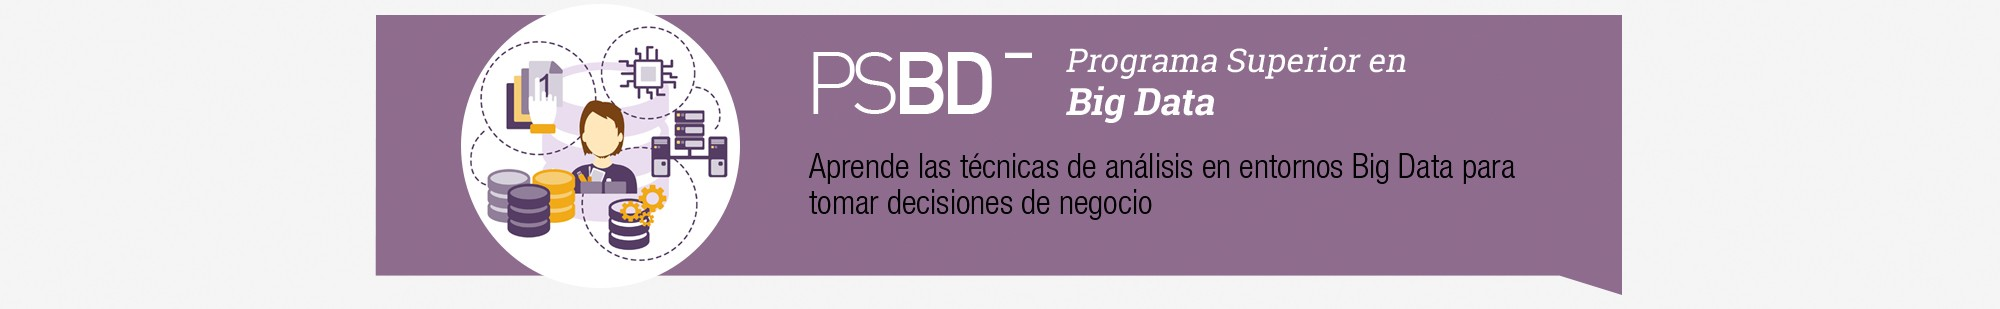 Programa Superior en Big Data